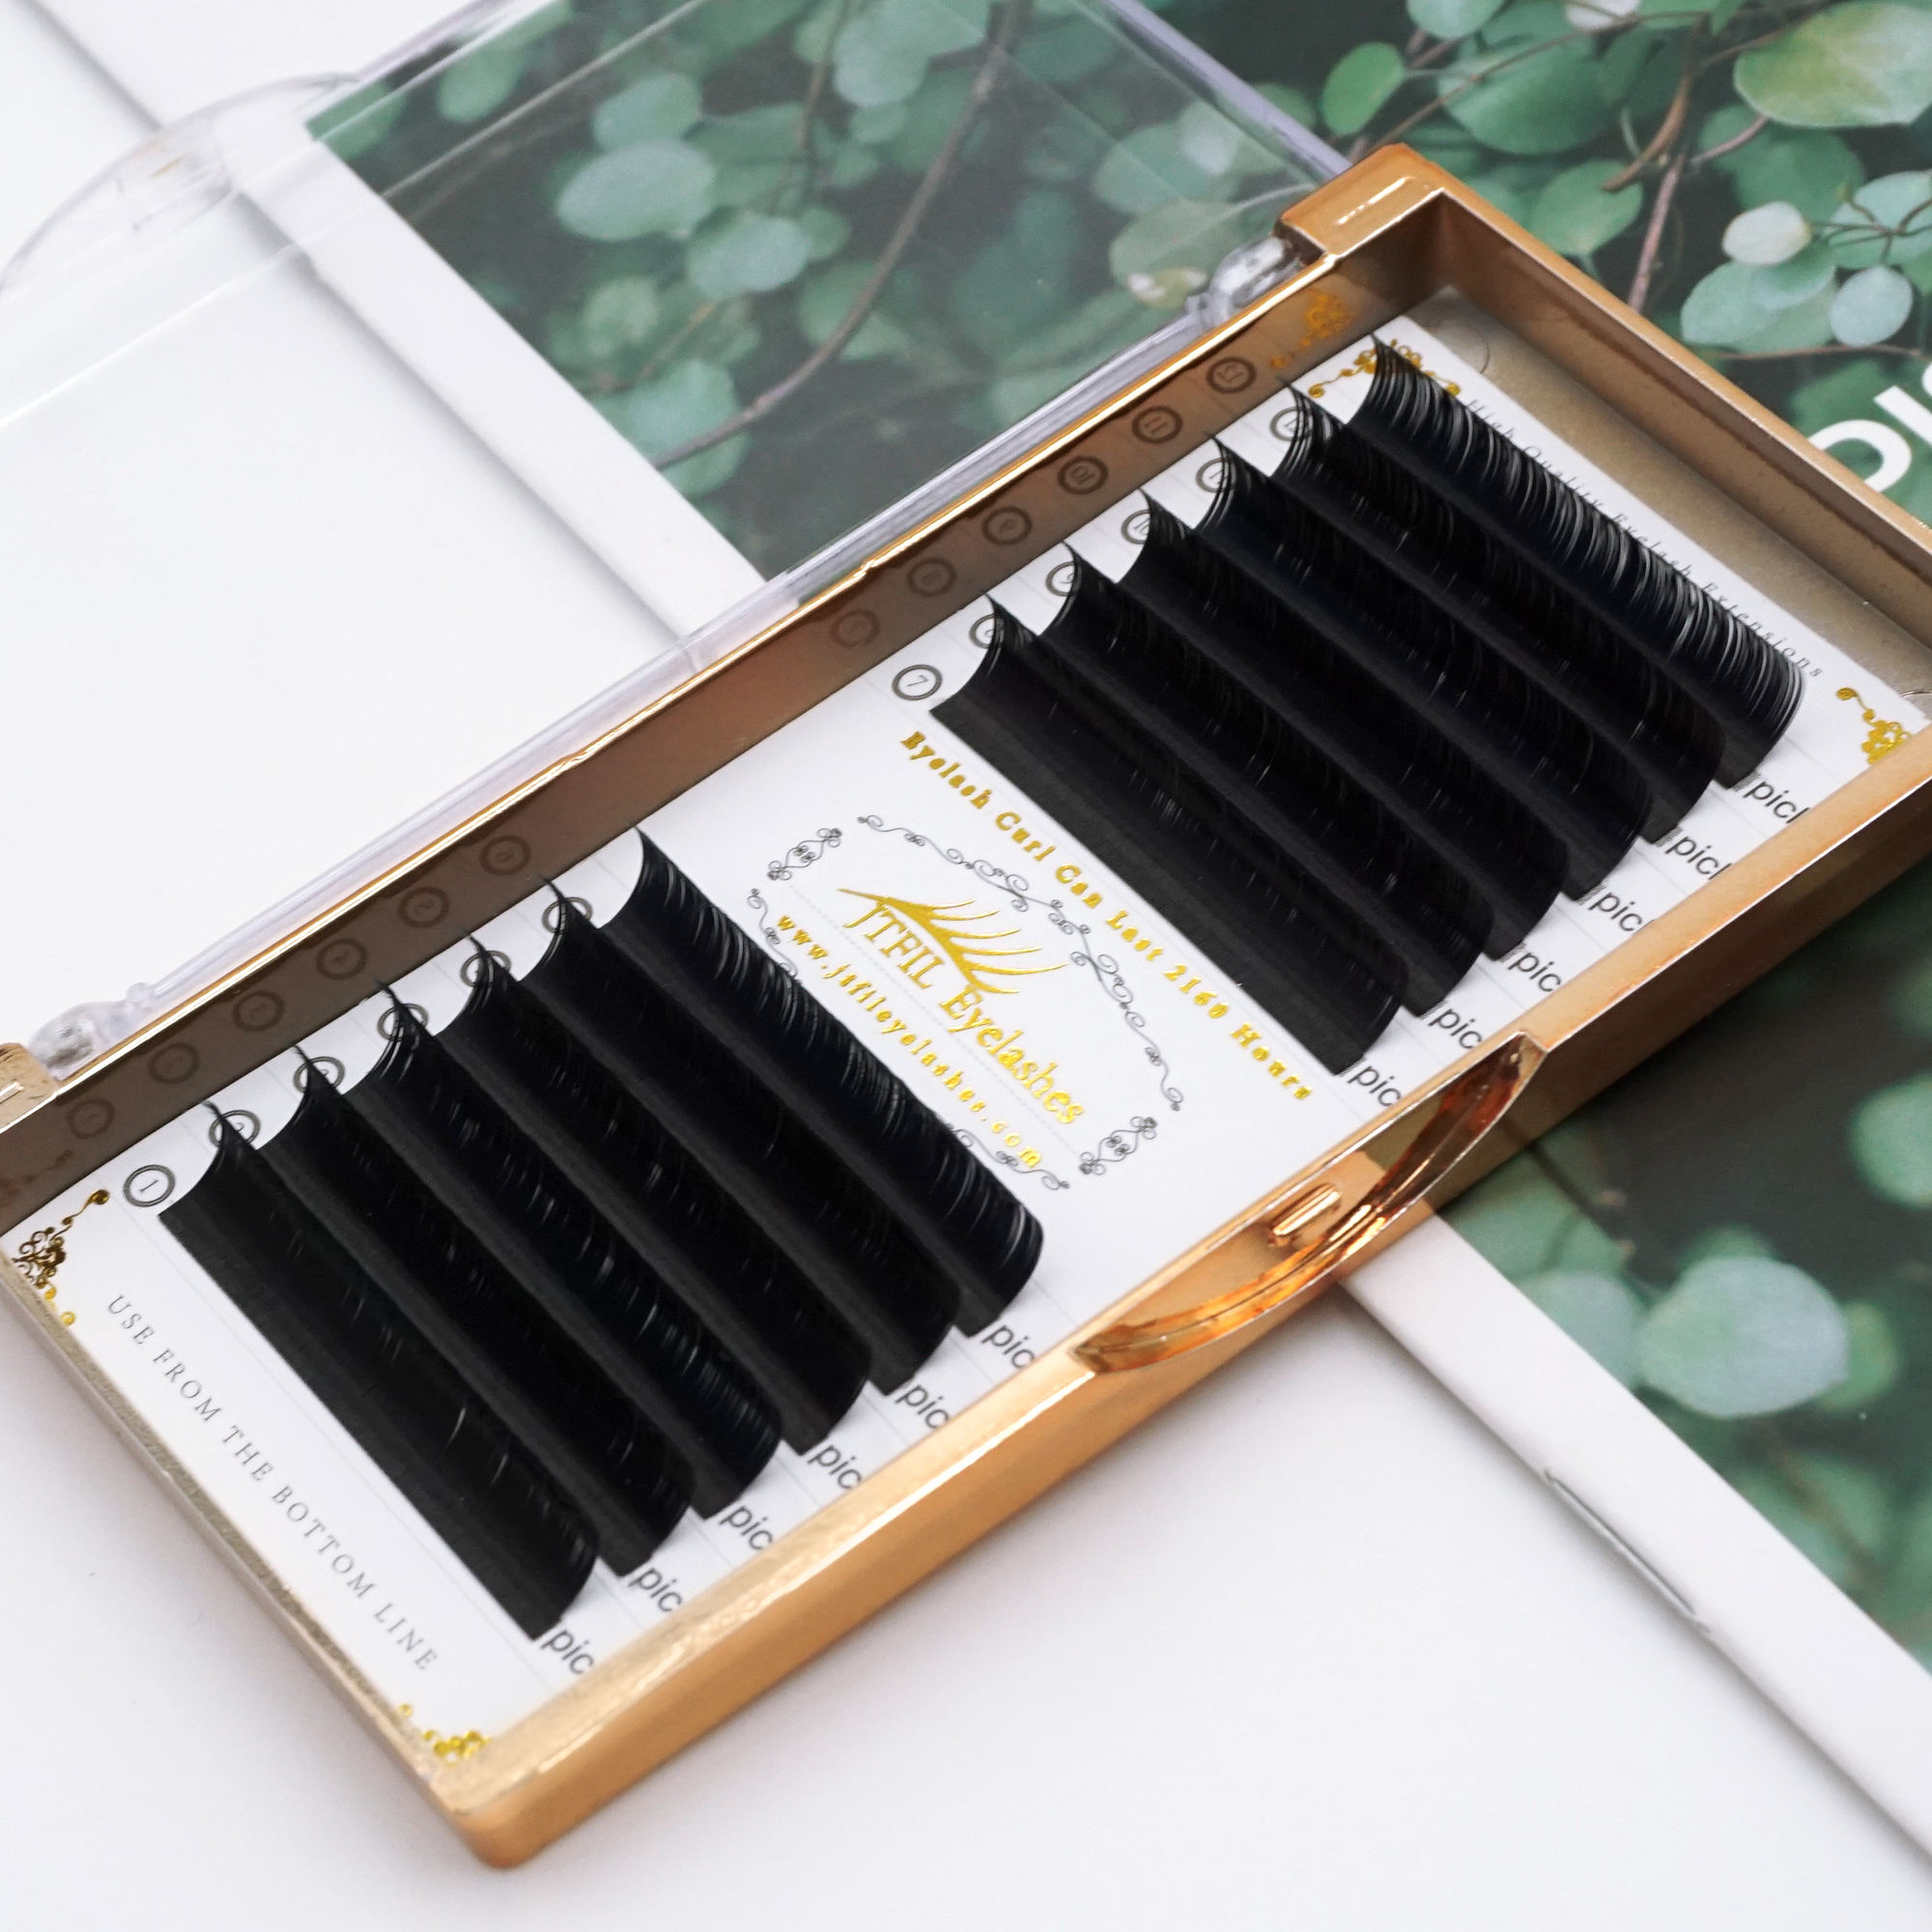 Regular dark black matte 0.03 korea mink lashes extension bloom in 1 second individual false eyelash extension